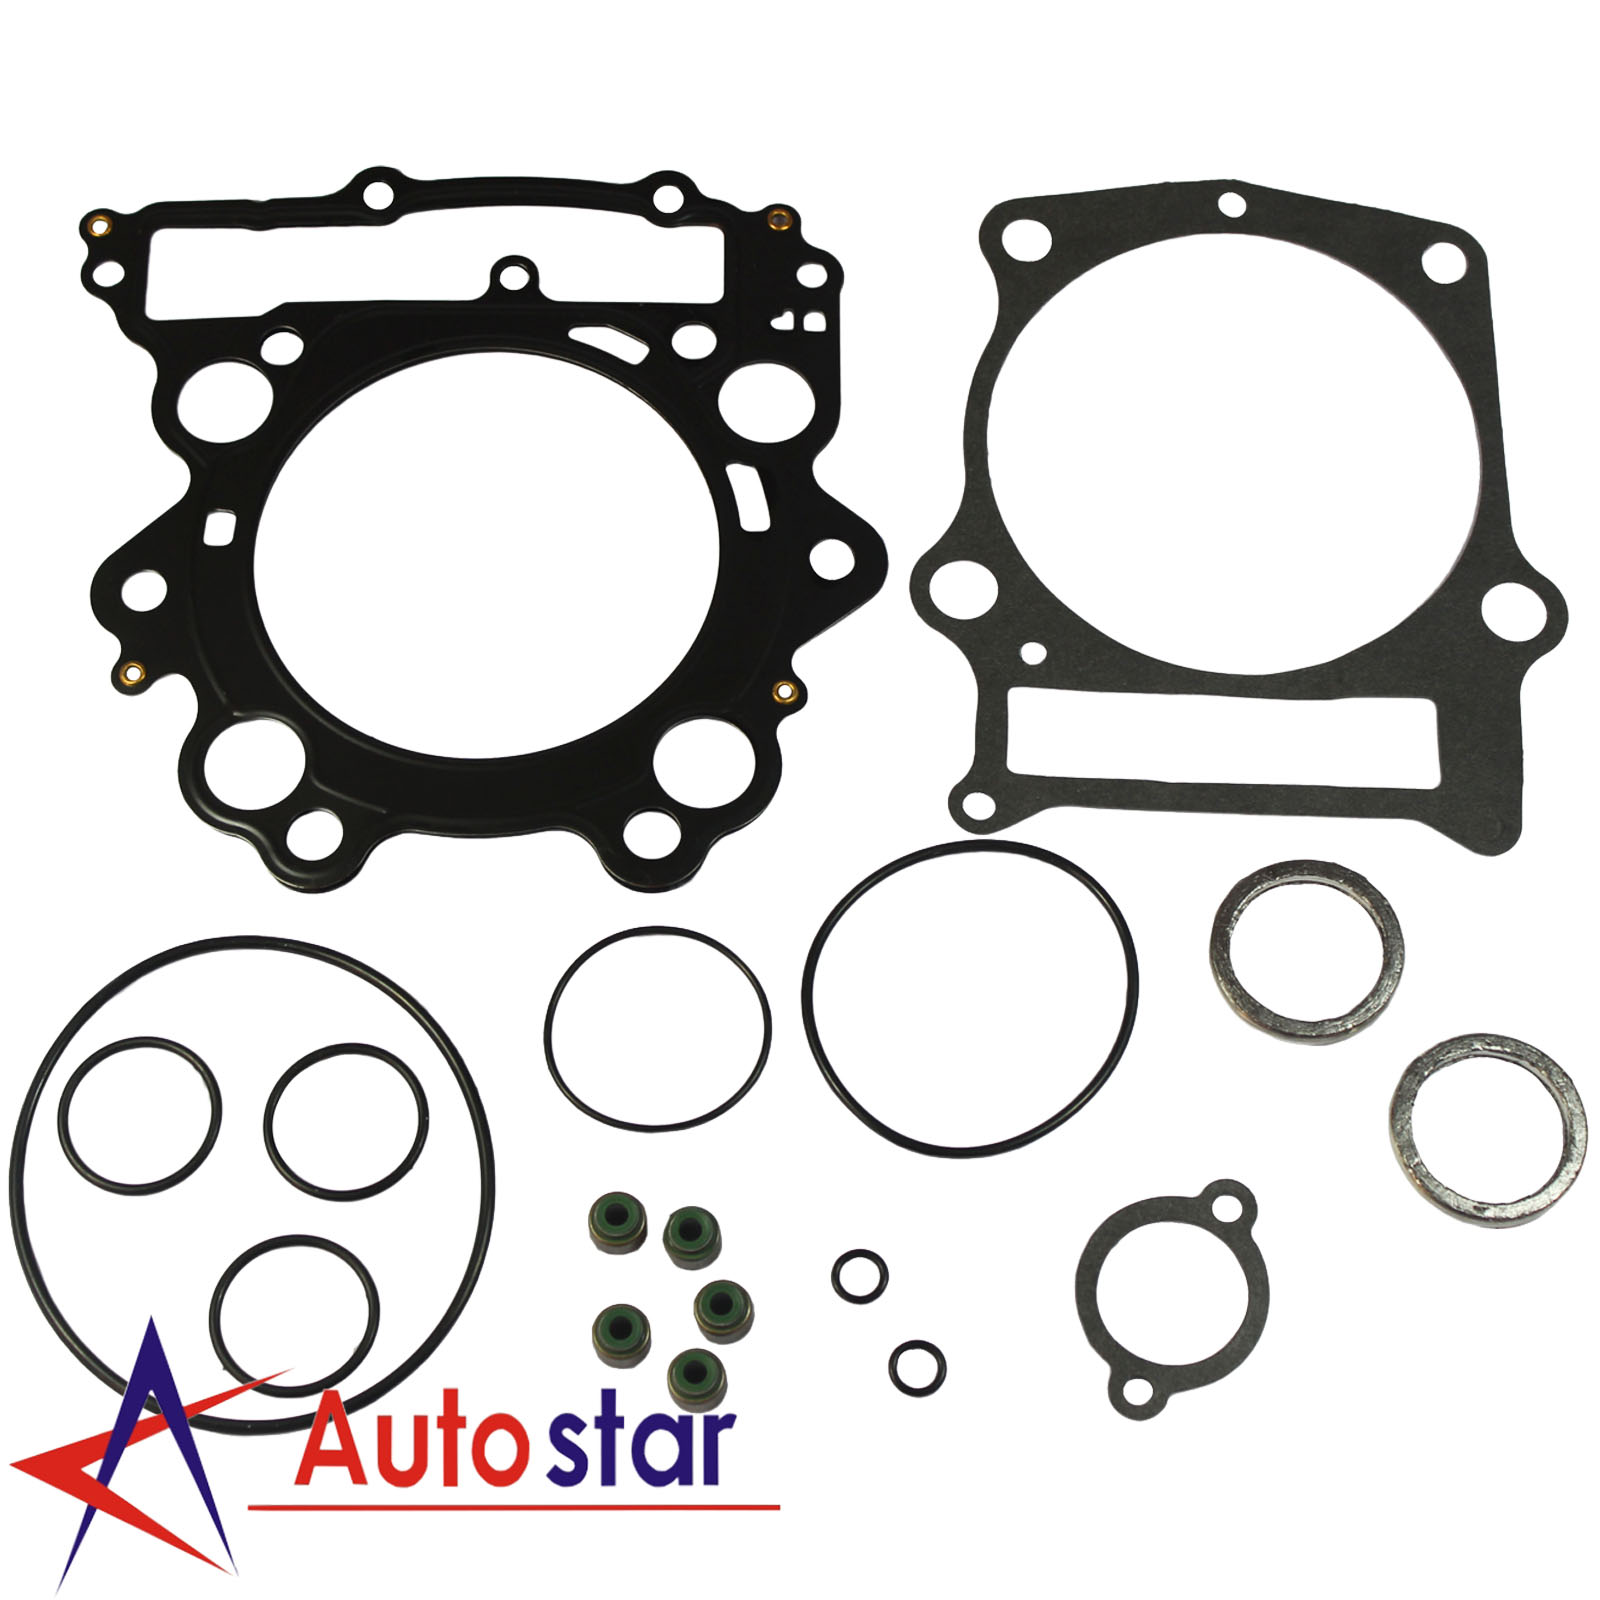 Top End Head Gasket Rebuild Kit For 04 07 Yamaha Rhino 660